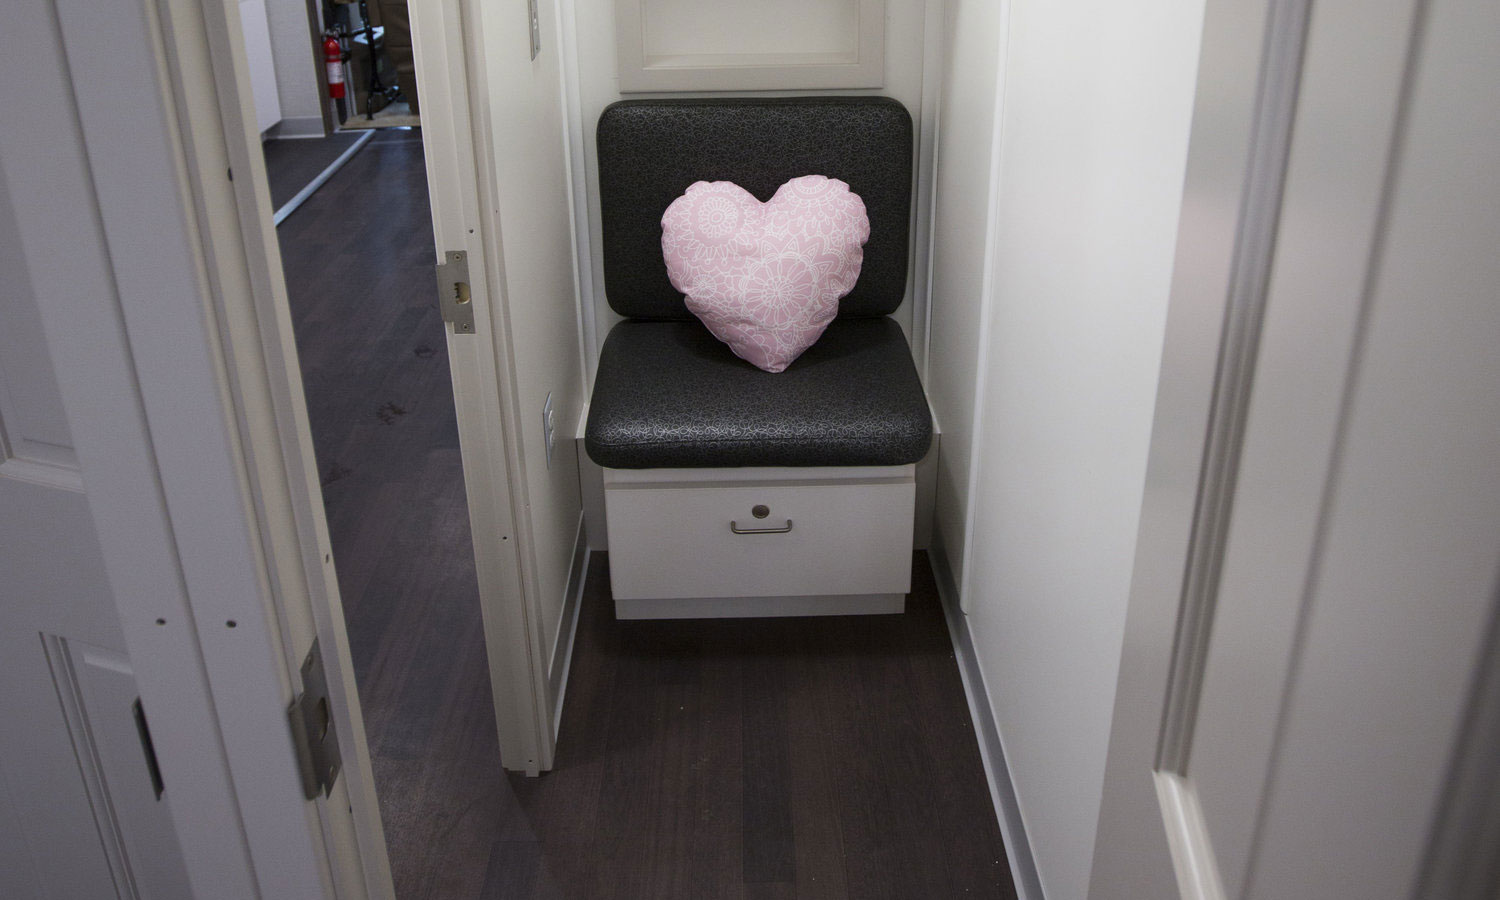 seat in mammovan with heart pillow